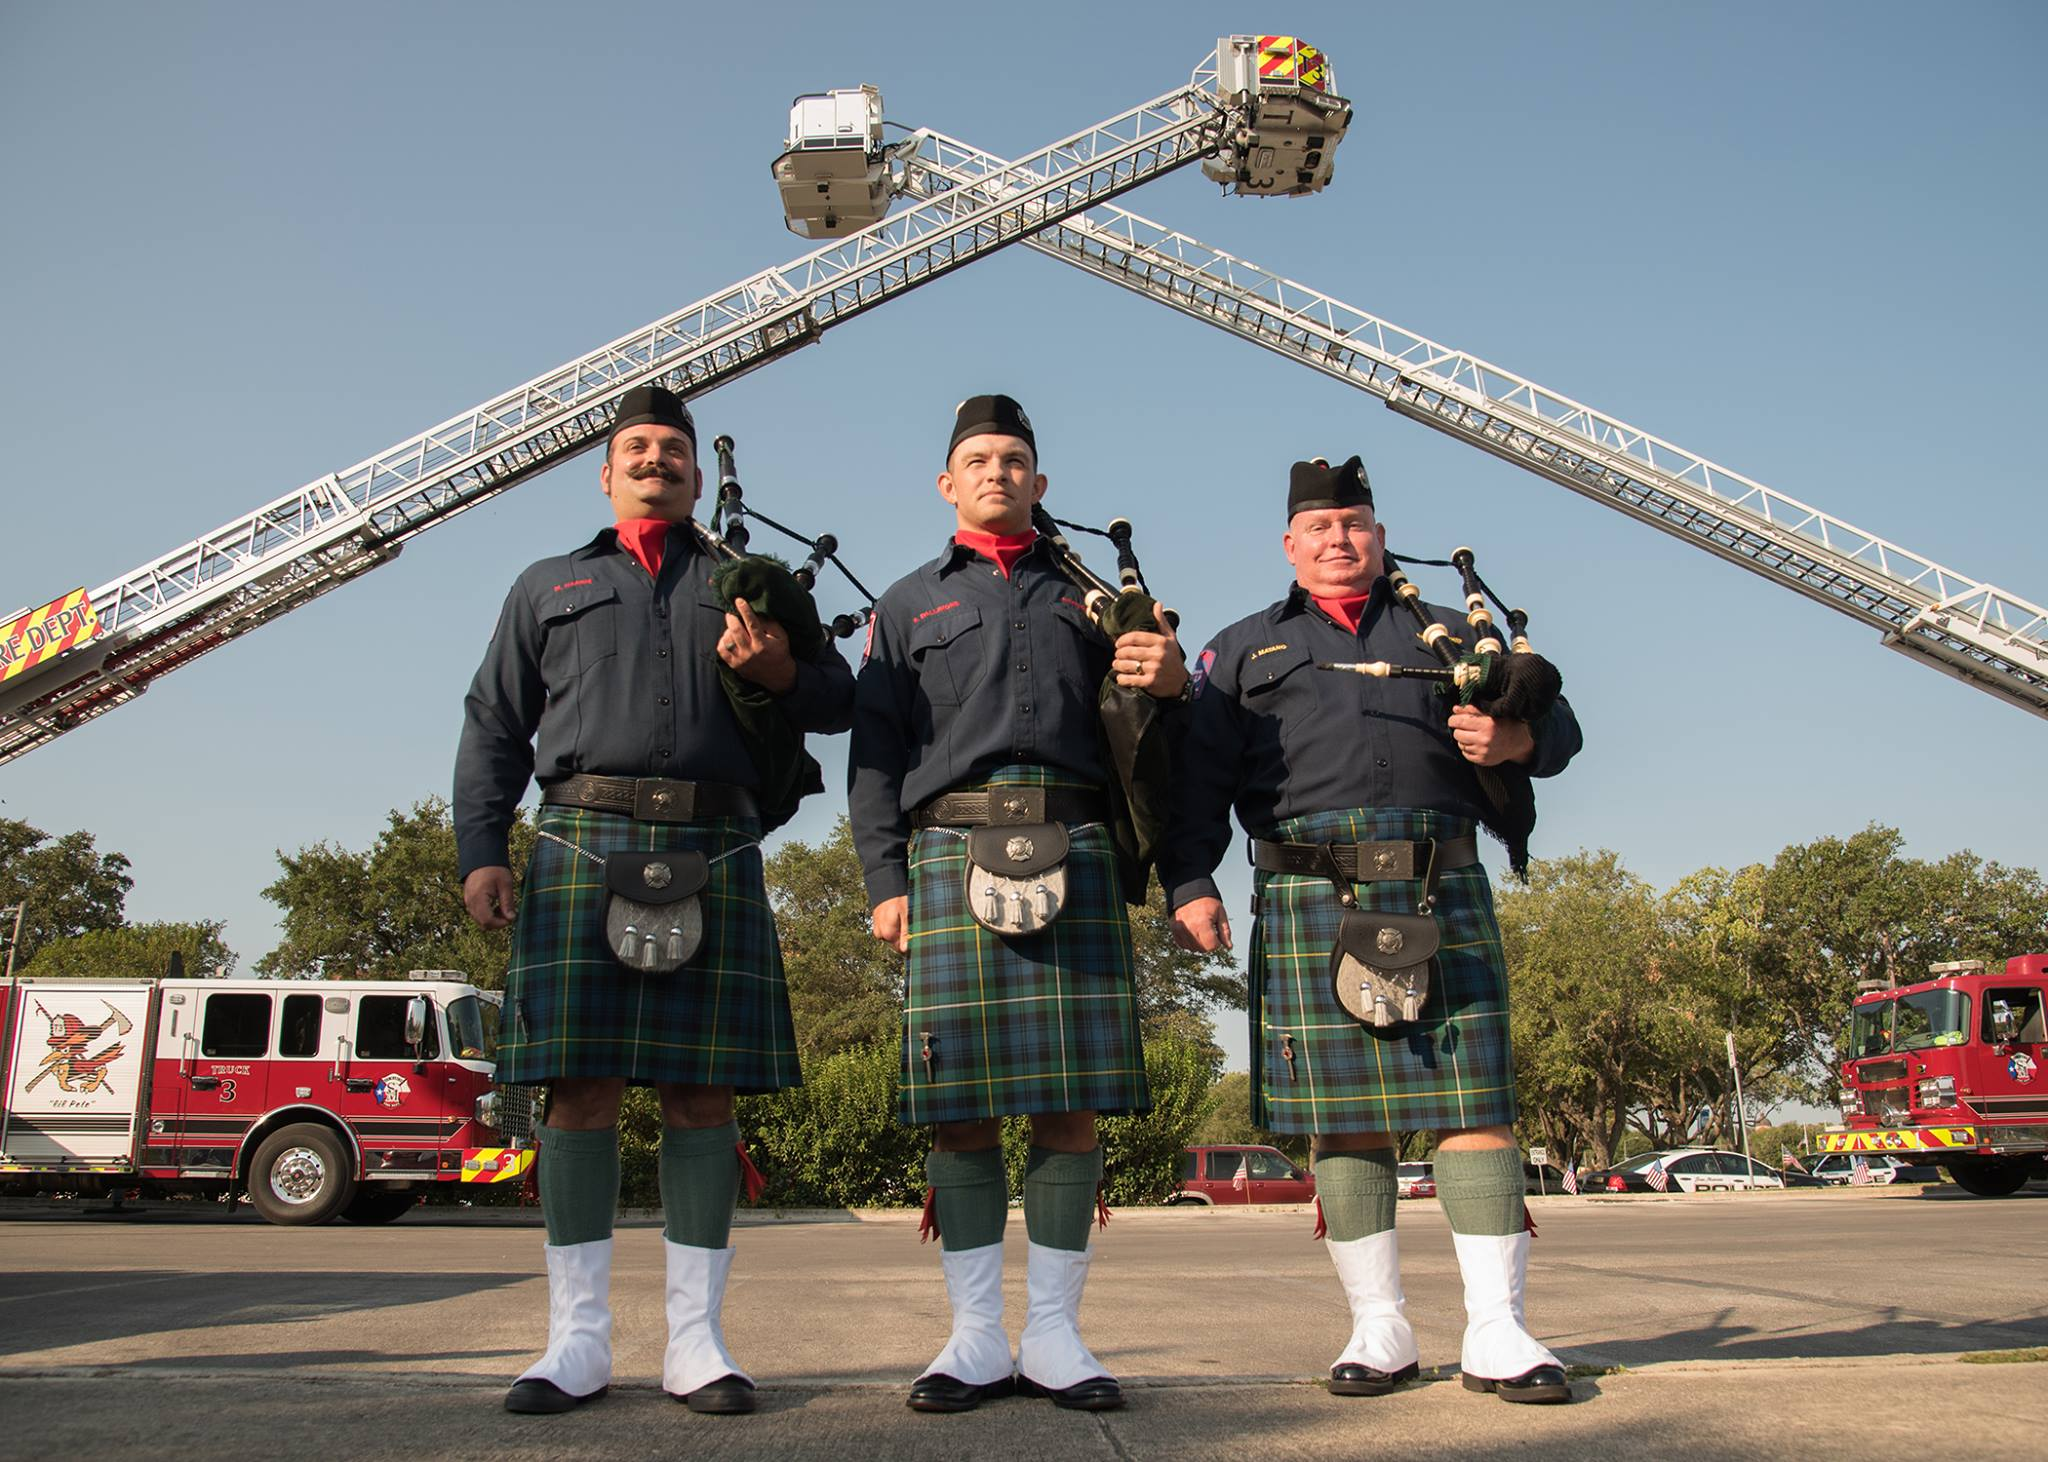 SMFD Bagpipers; Firefighters Micah Harris, Robert Dallimore, and Battalion Chief Jim Matano.